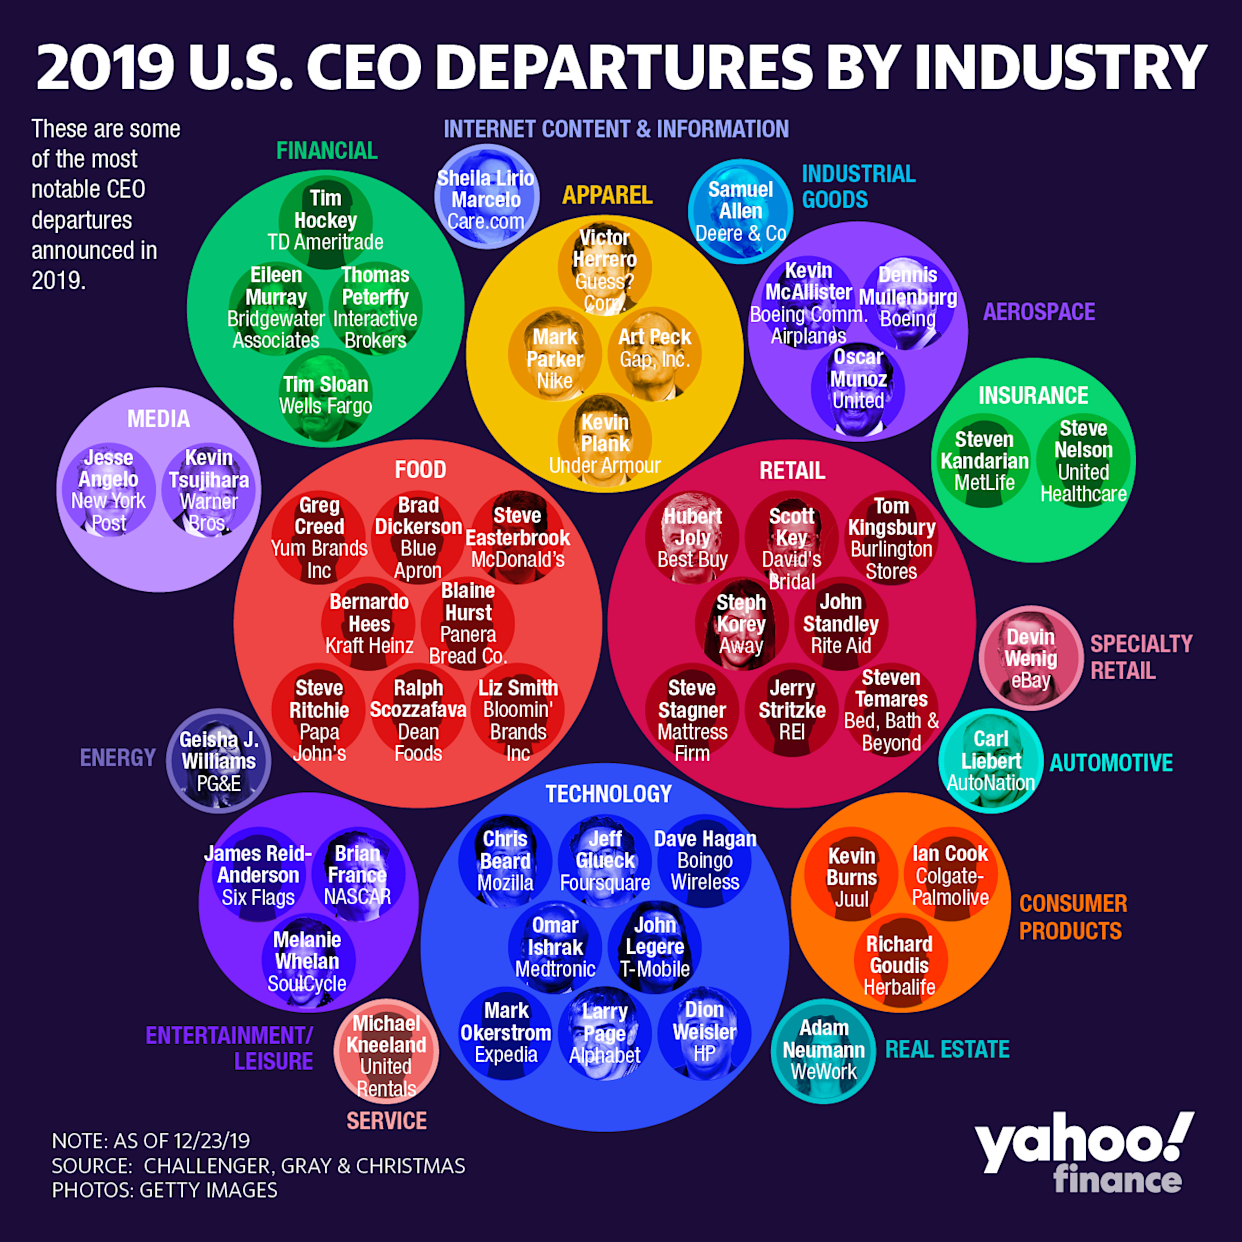 These are some of the most notable CEO departures announced in 2019